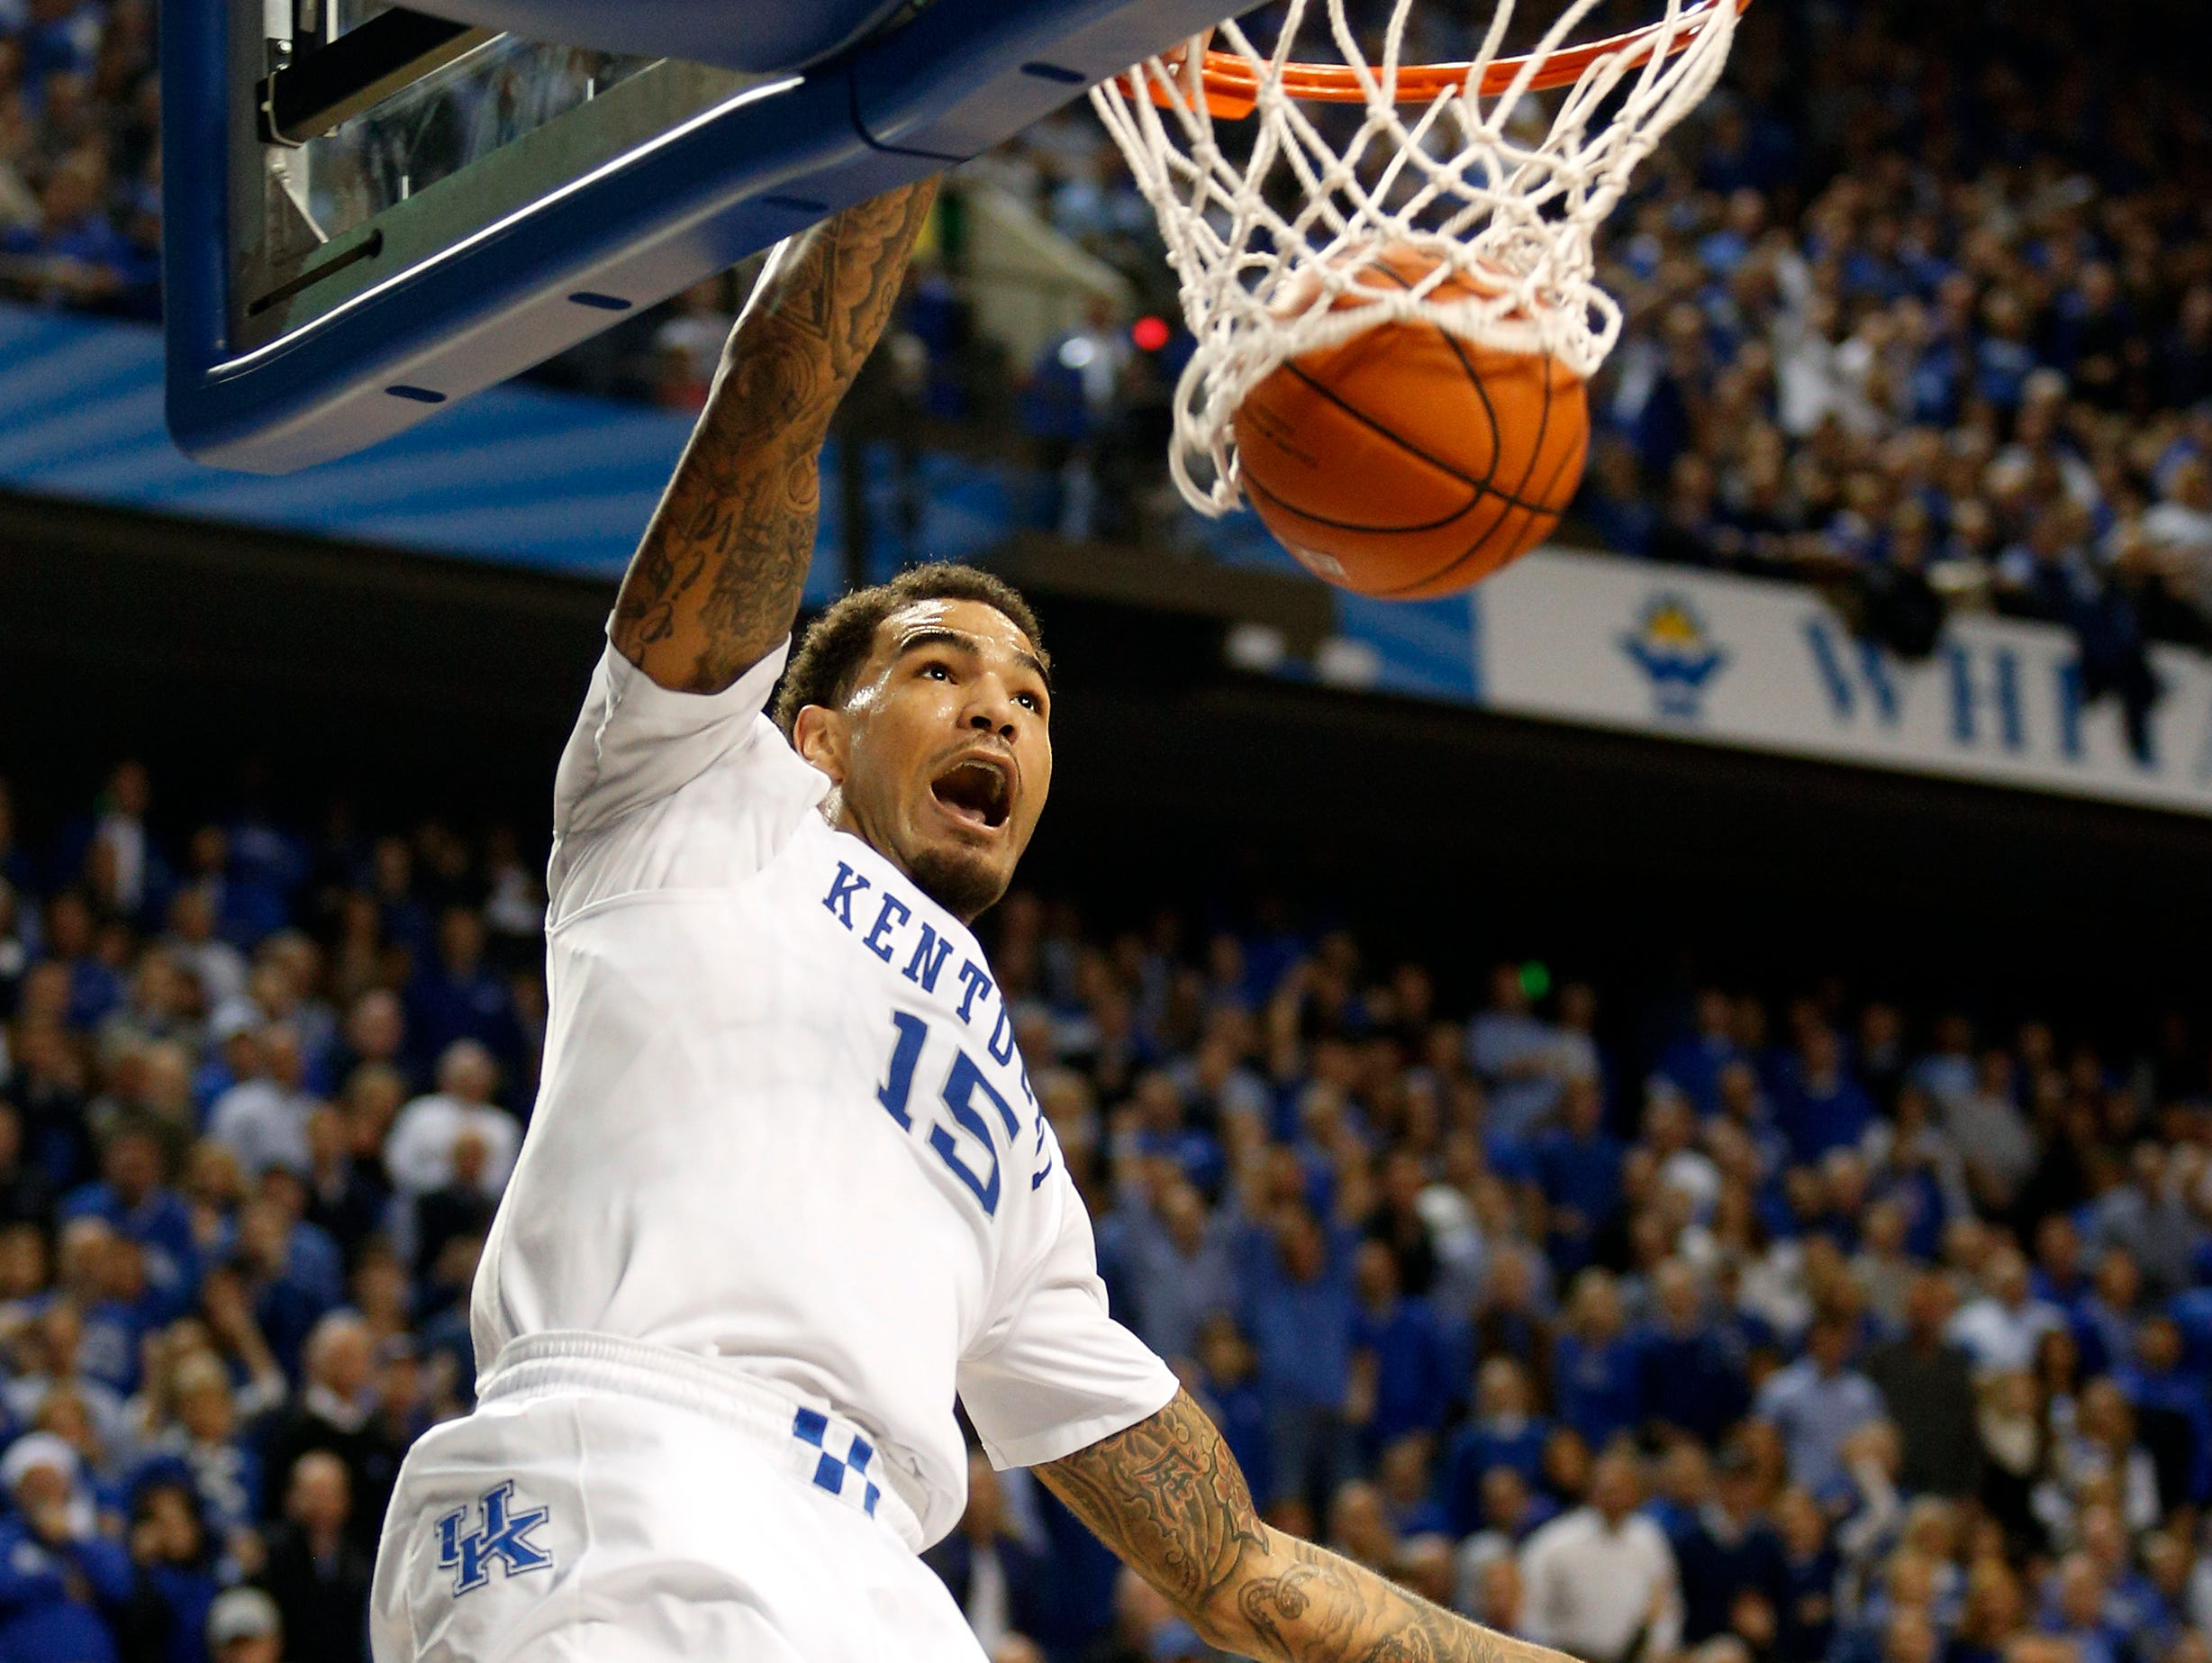 Kentucky's Willie Cauley-Stein gets a breakaway slam dunk against North Carolina. Cayley-Stein had 15 points, 4 steals and 6 rebounds. Dec. 13, 2014